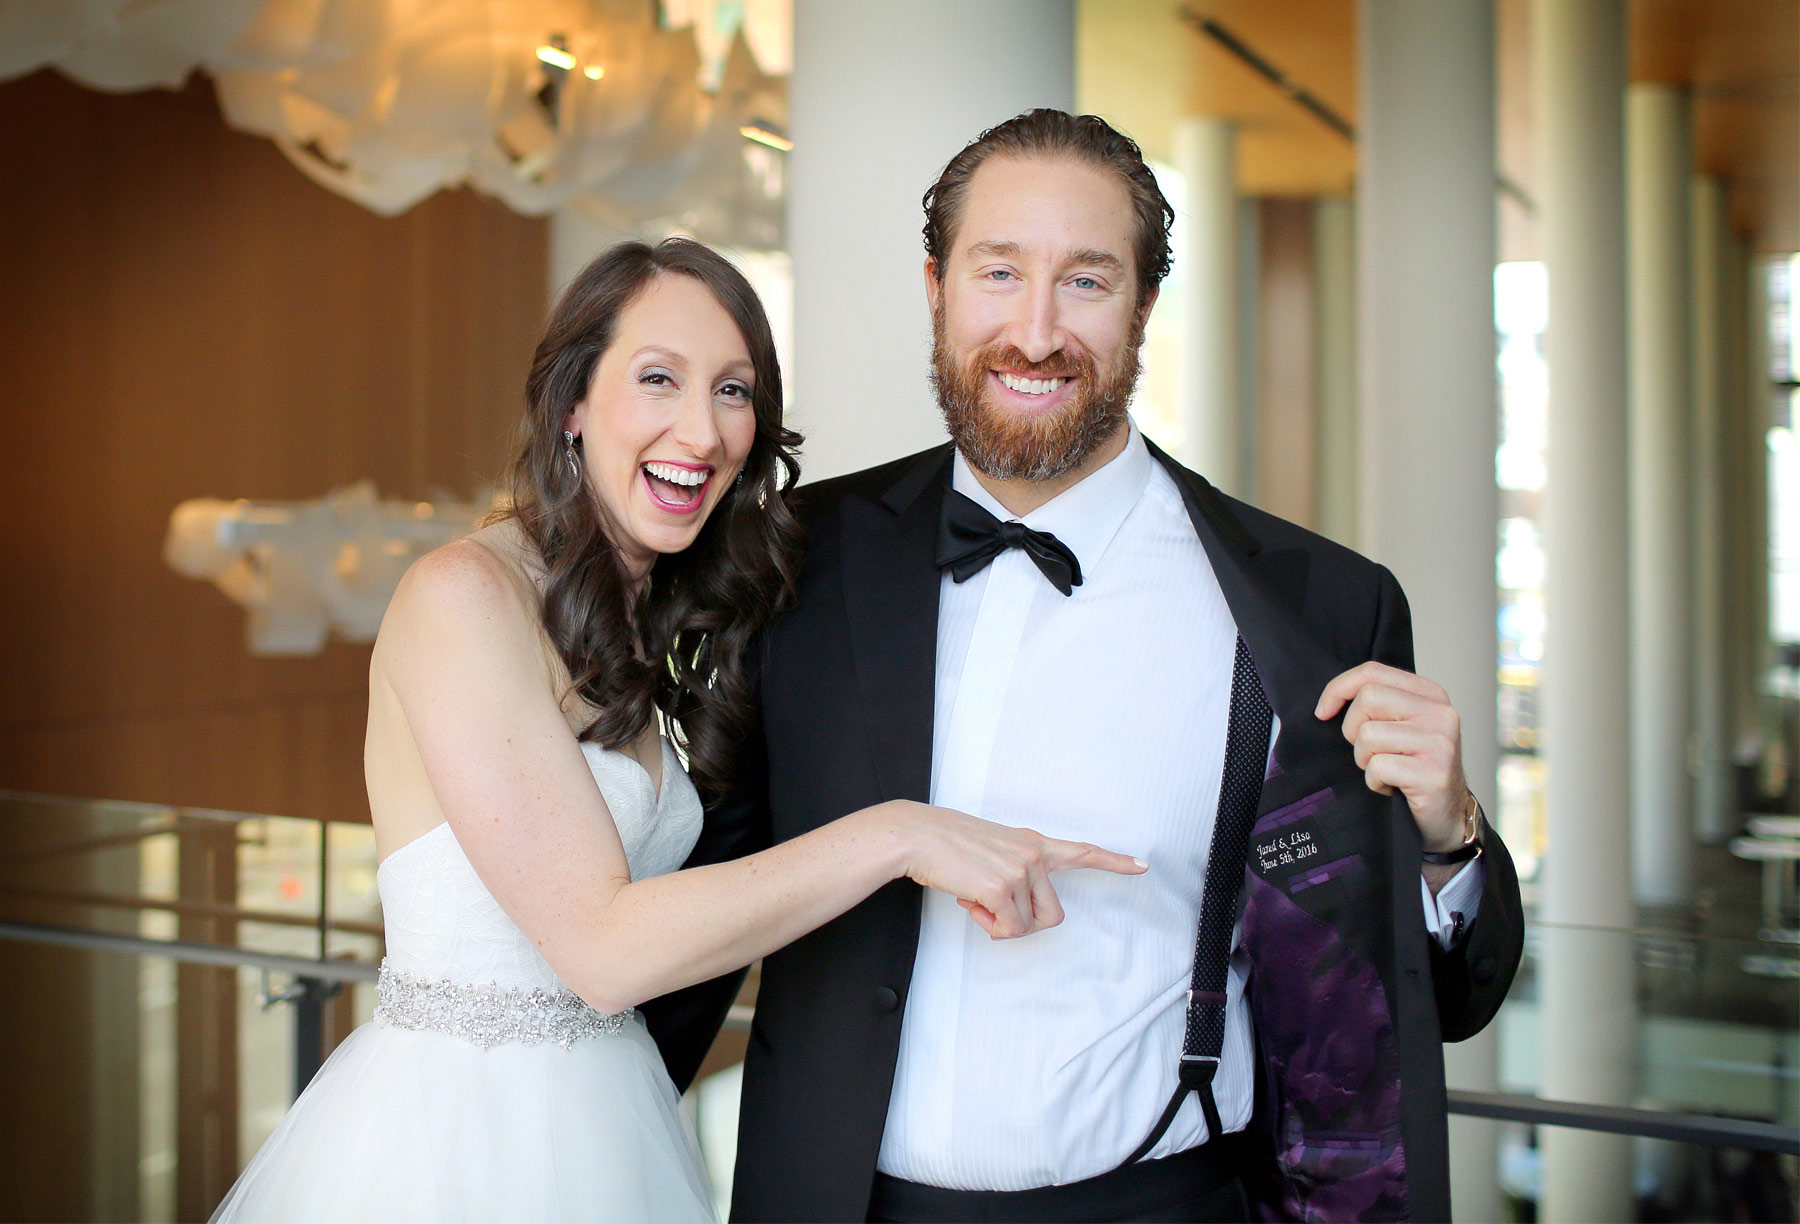 06-Minneapolis-Minnesota-Wedding-Photography-by-Vick-Photography-Hilton-Downtown-Reversable-Tux-Suite-Liner-Lisa-and-Jared.jpg